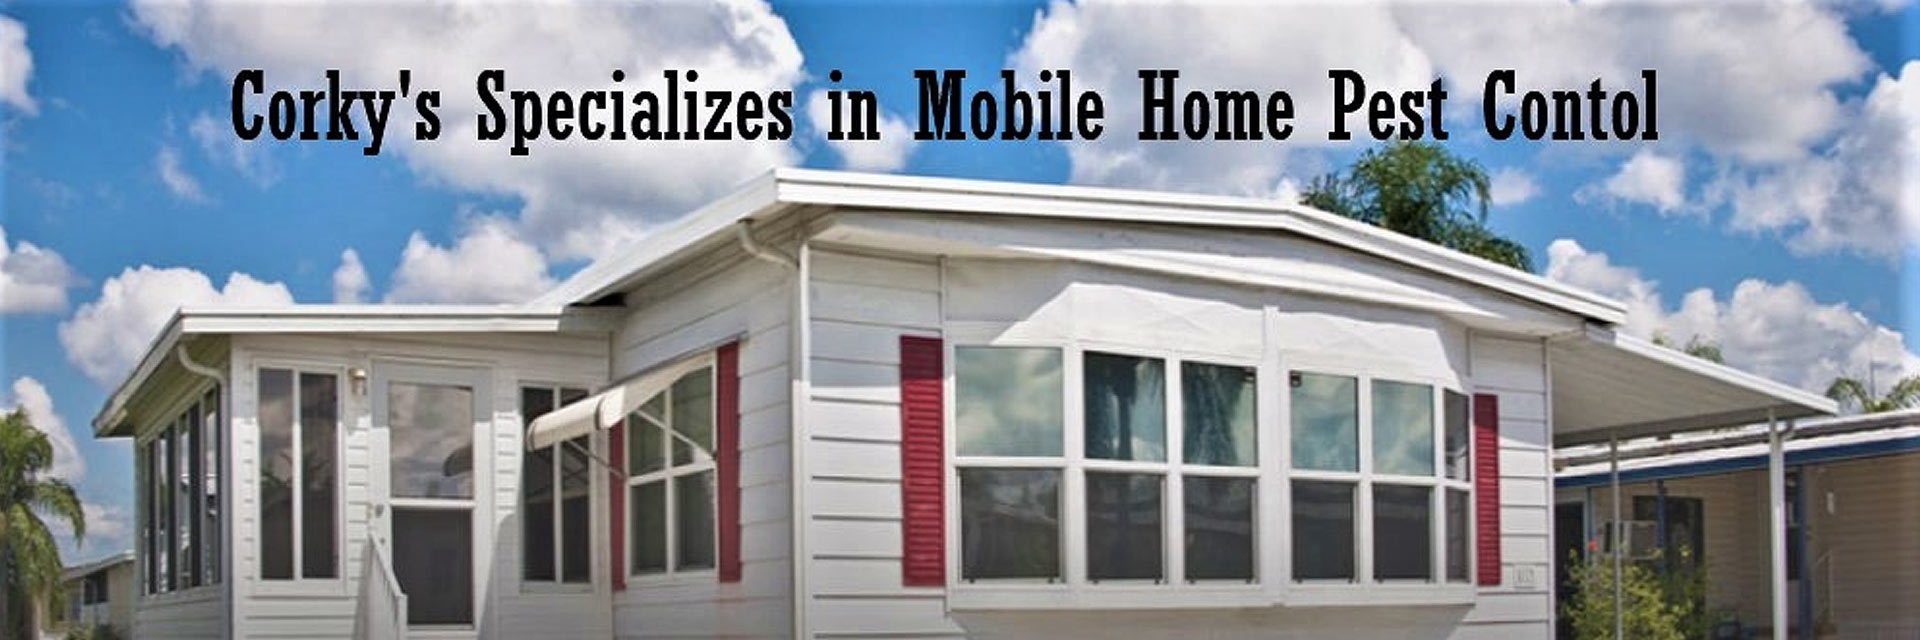 he Ultimate in Mobile Home Pest Control for Ants, Spiders and More!